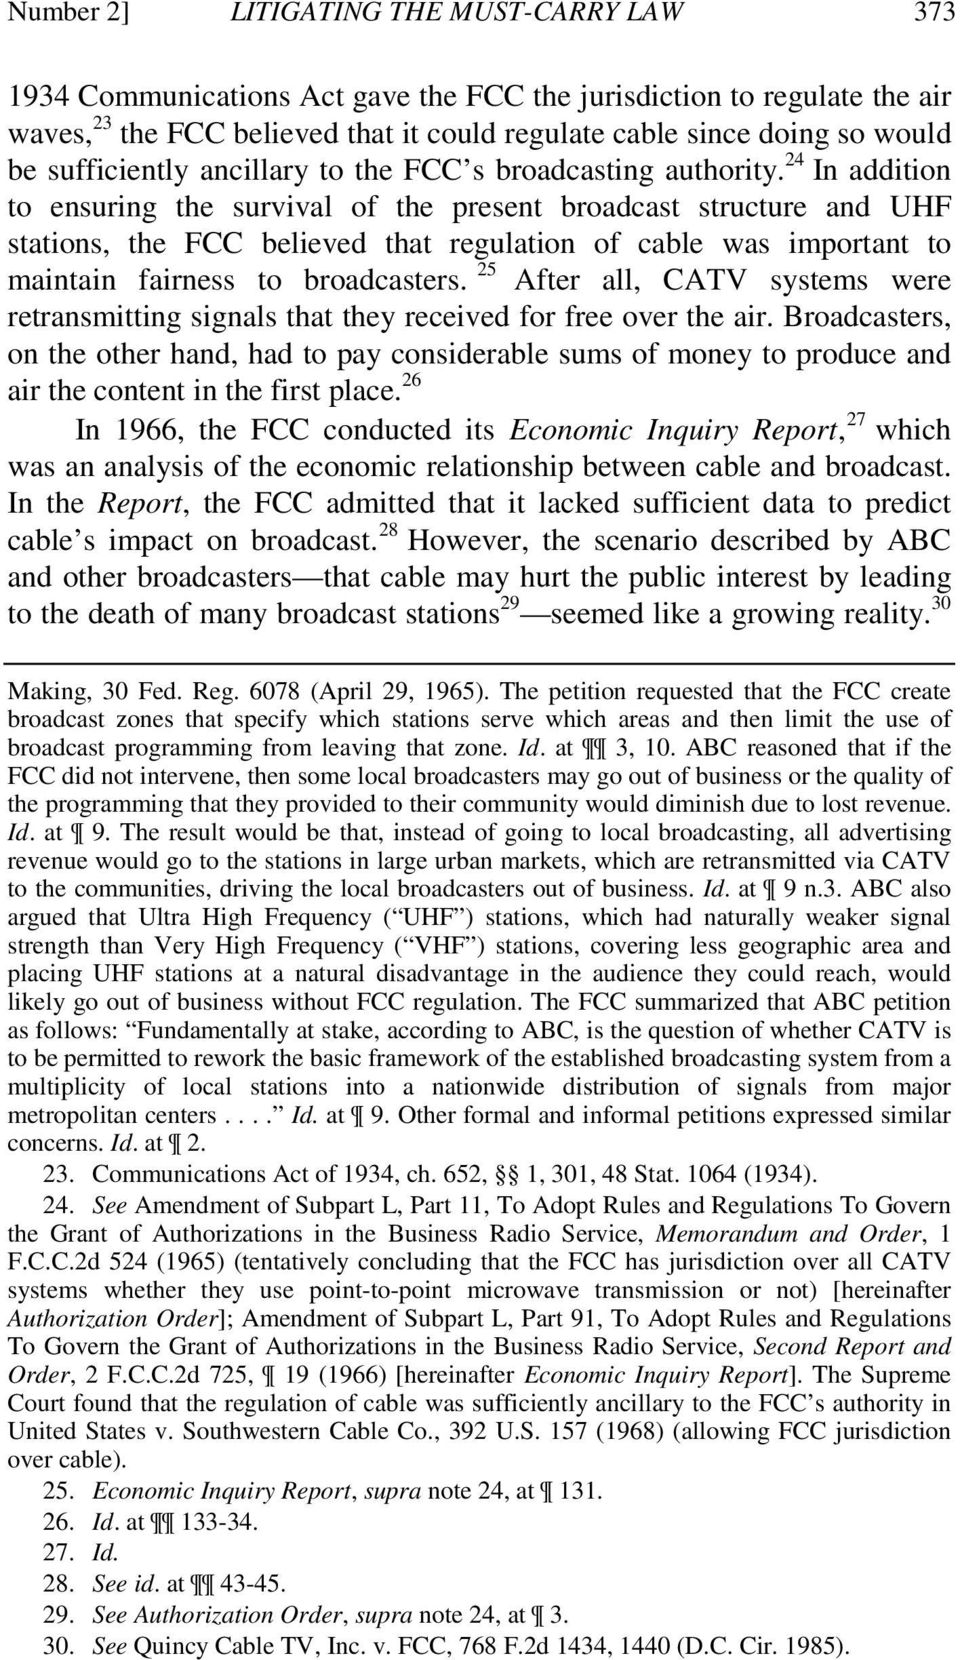 24 In addition to ensuring the survival of the present broadcast structure and UHF stations, the FCC believed that regulation of cable was important to maintain fairness to broadcasters.